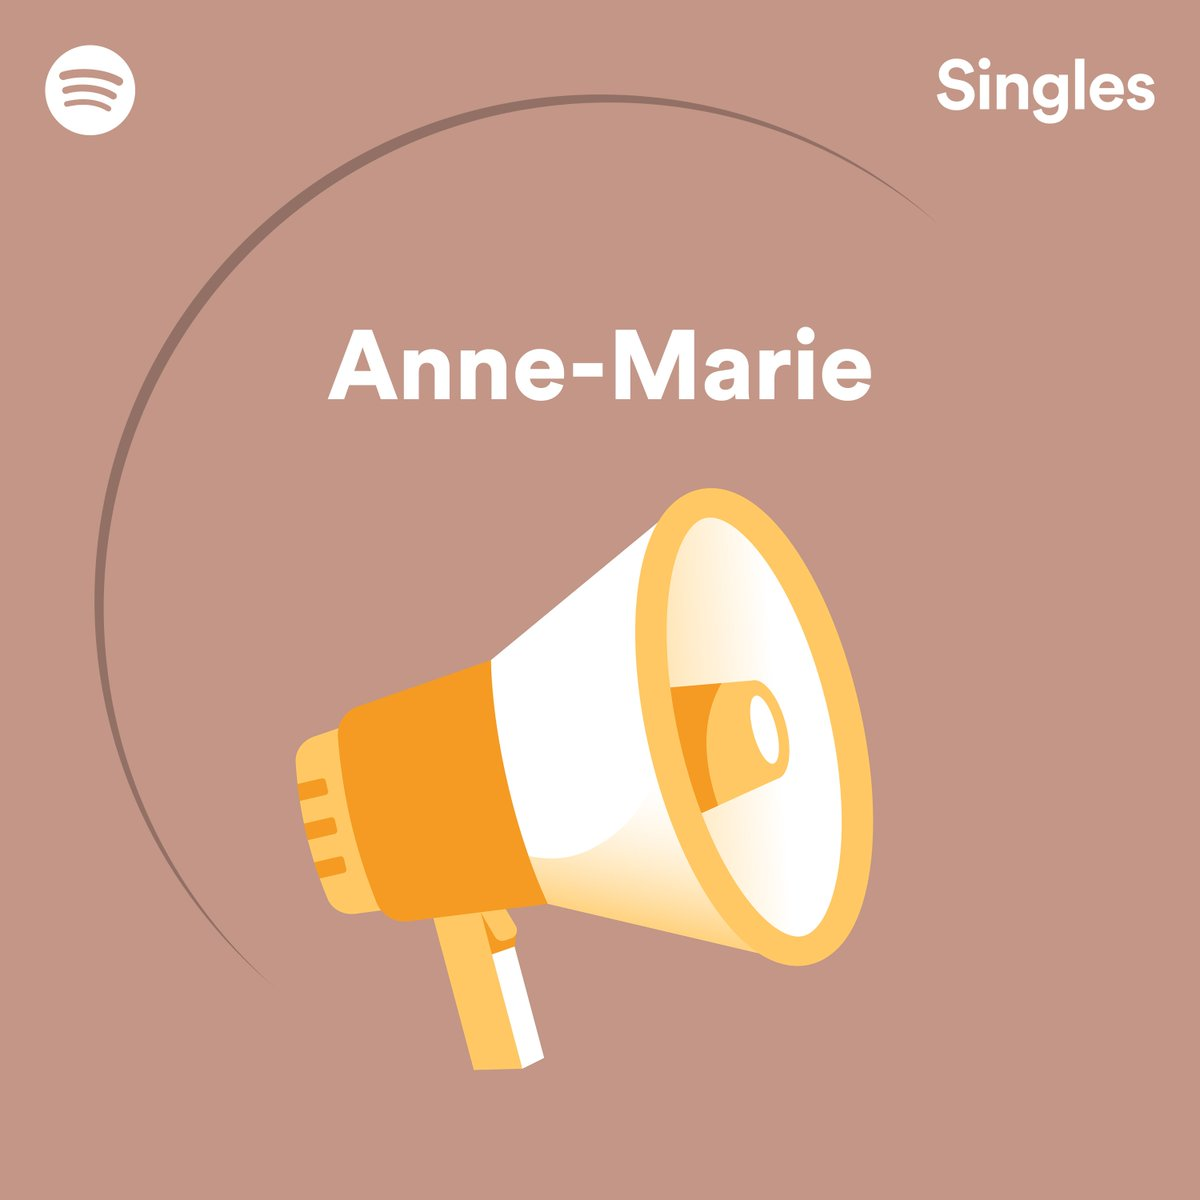 Spotify Uk Ireland On Twitter The Early 2000s Were Just Too Good To Leave Behind Annemarie Has Us Reminiscing With Her Cover Of Iamjojo S Leave Get Out For Spotifysingles Https T Co 5yxvsltehu